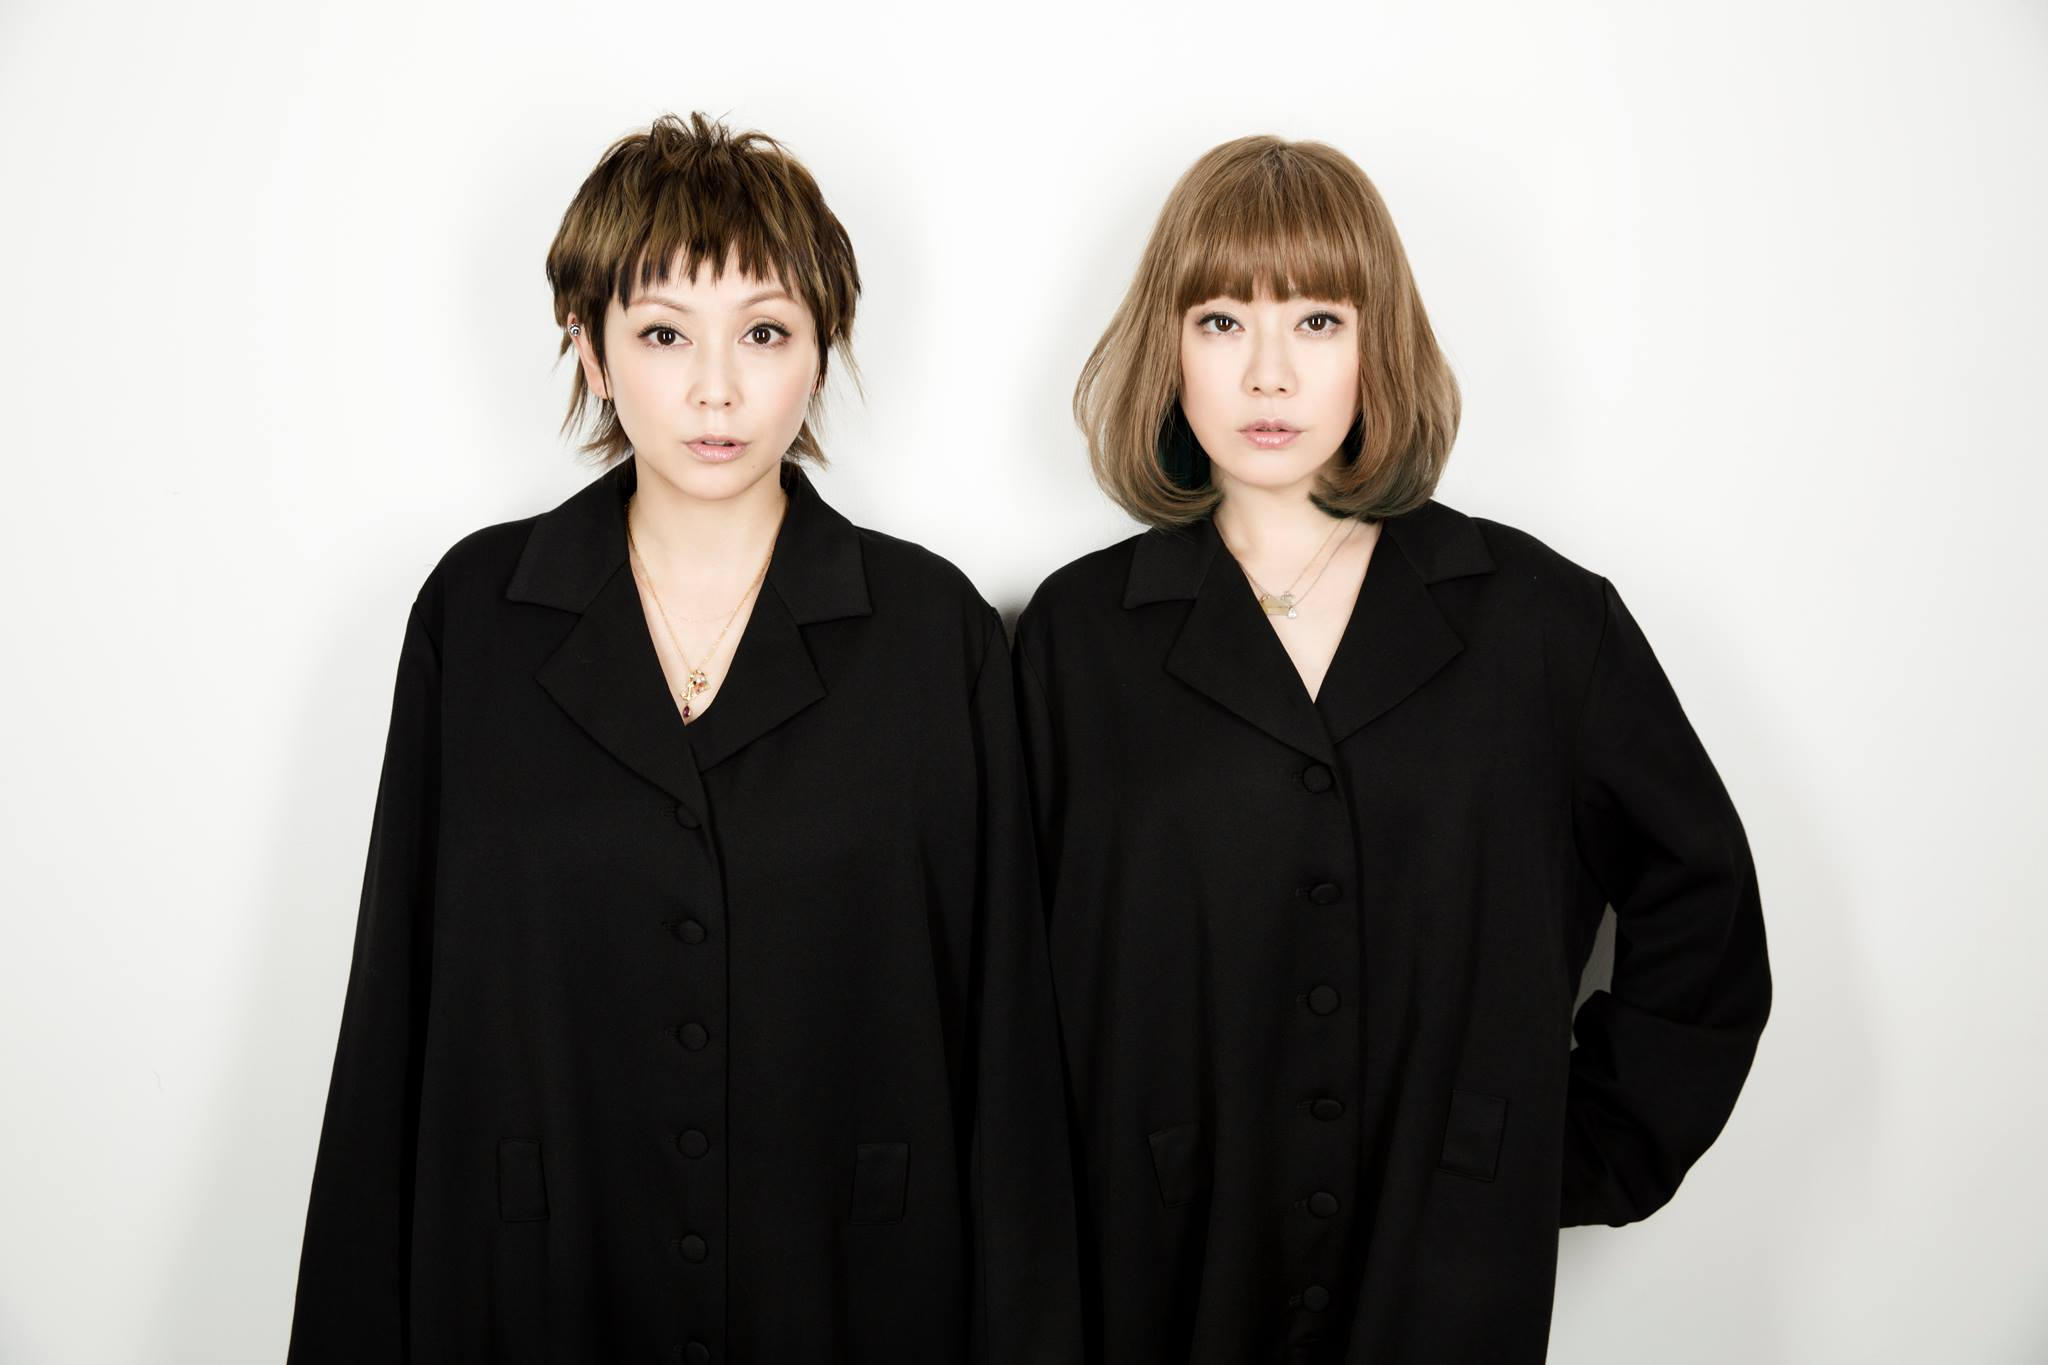 Puffy AmiYumi (Japan) to perform in the US this April